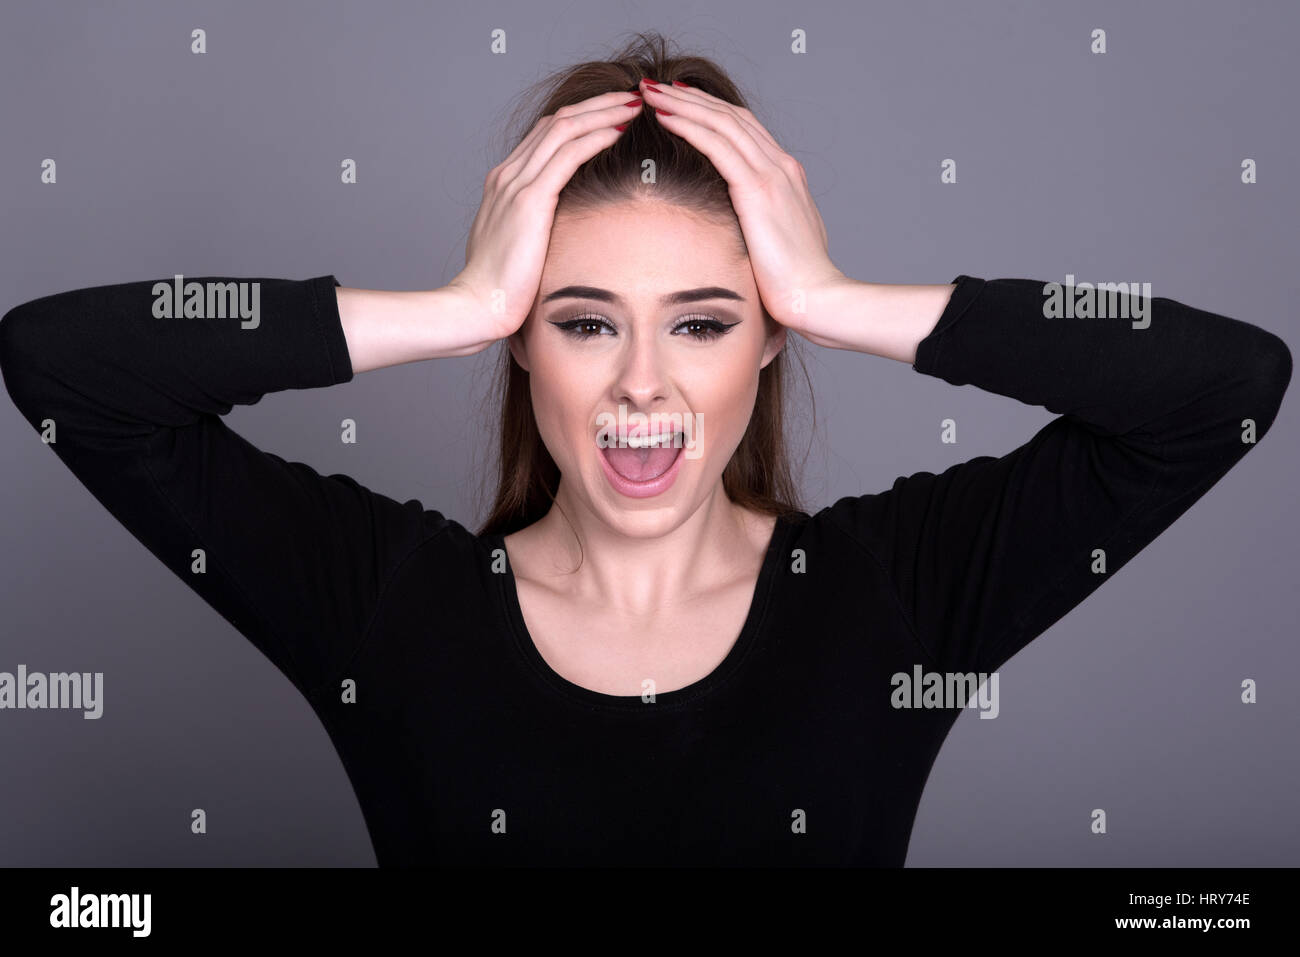 Young woman with hands on head shouting - Stock Image